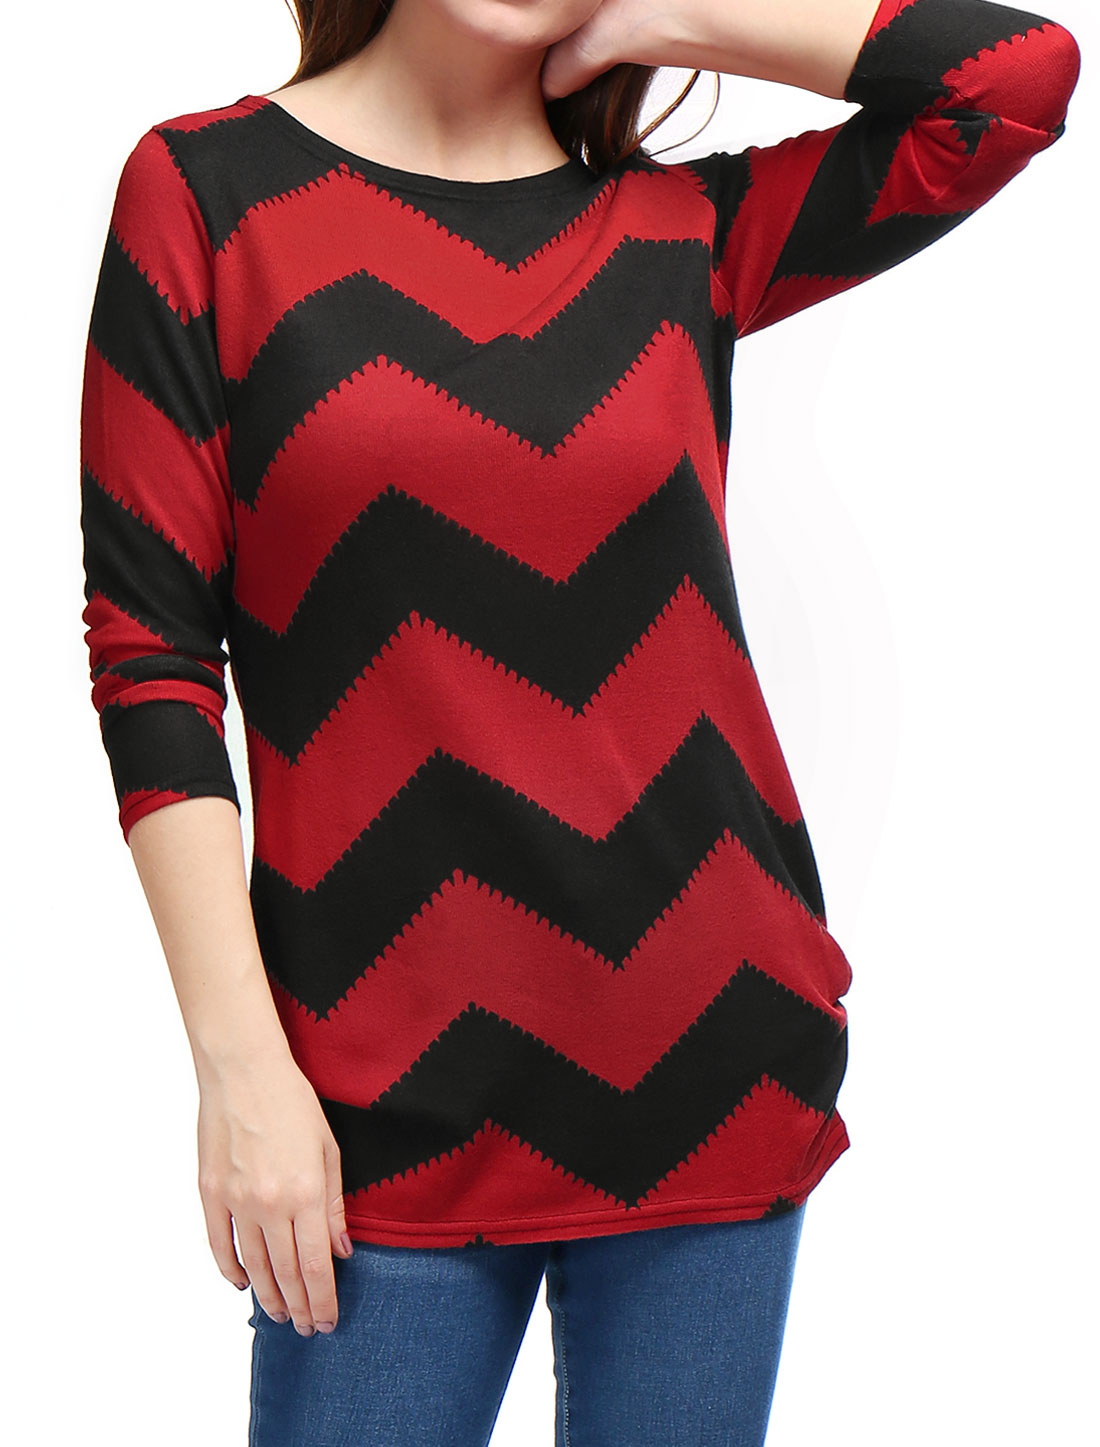 Woman Zig-Zag Pattern Knitted Loose Tunic Shirt Black Red M